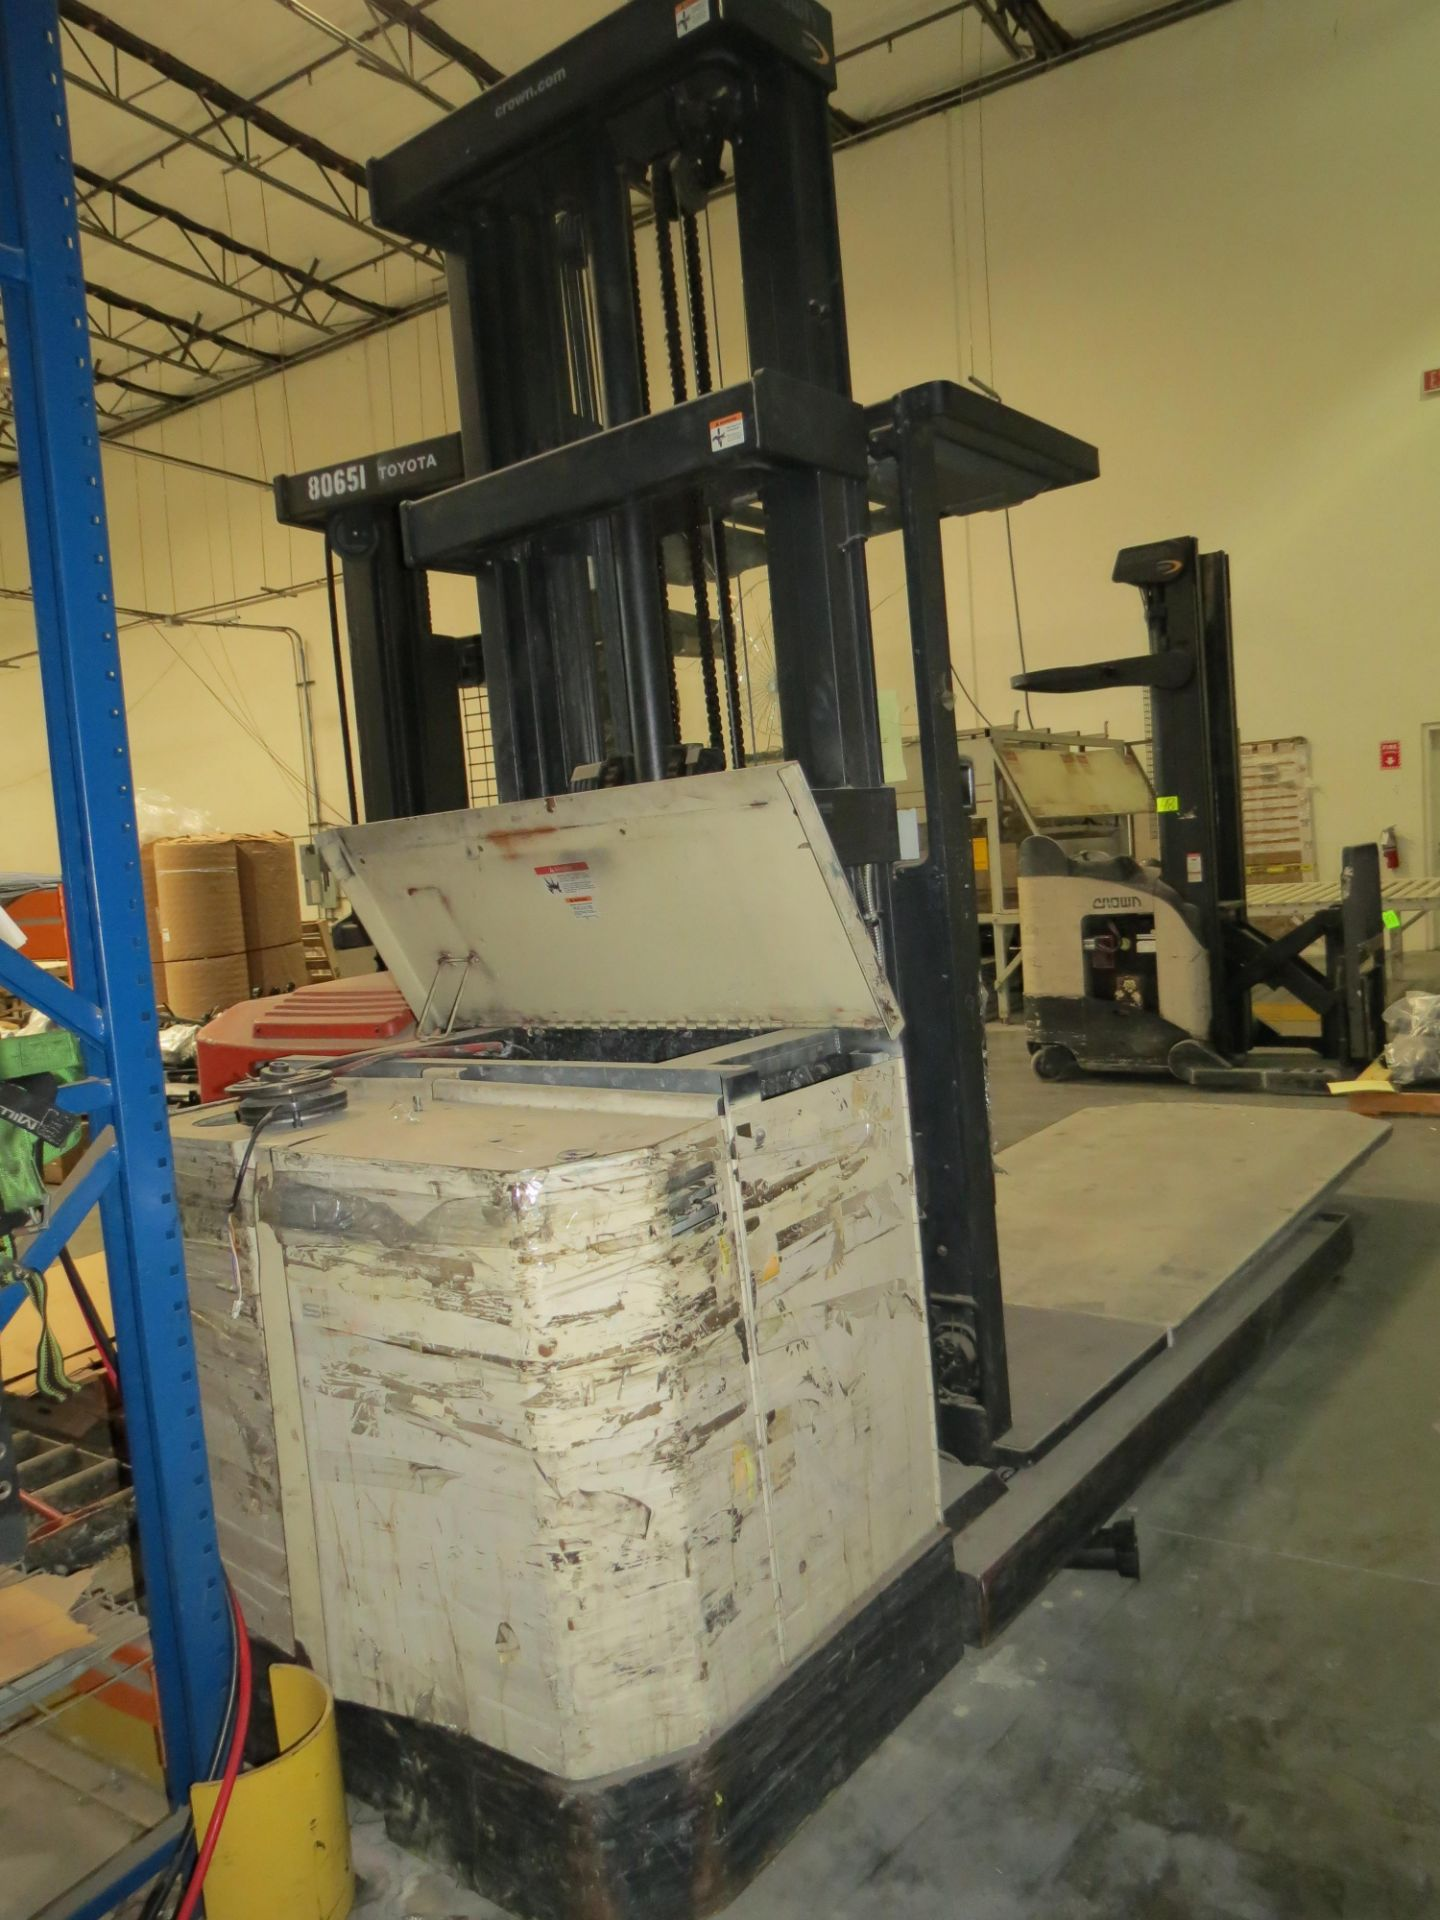 Crown SP 3-Stage Order Picker Electric Forklift 6860 Capacity ( Does Not Run, Needs New Battery) - Image 3 of 6